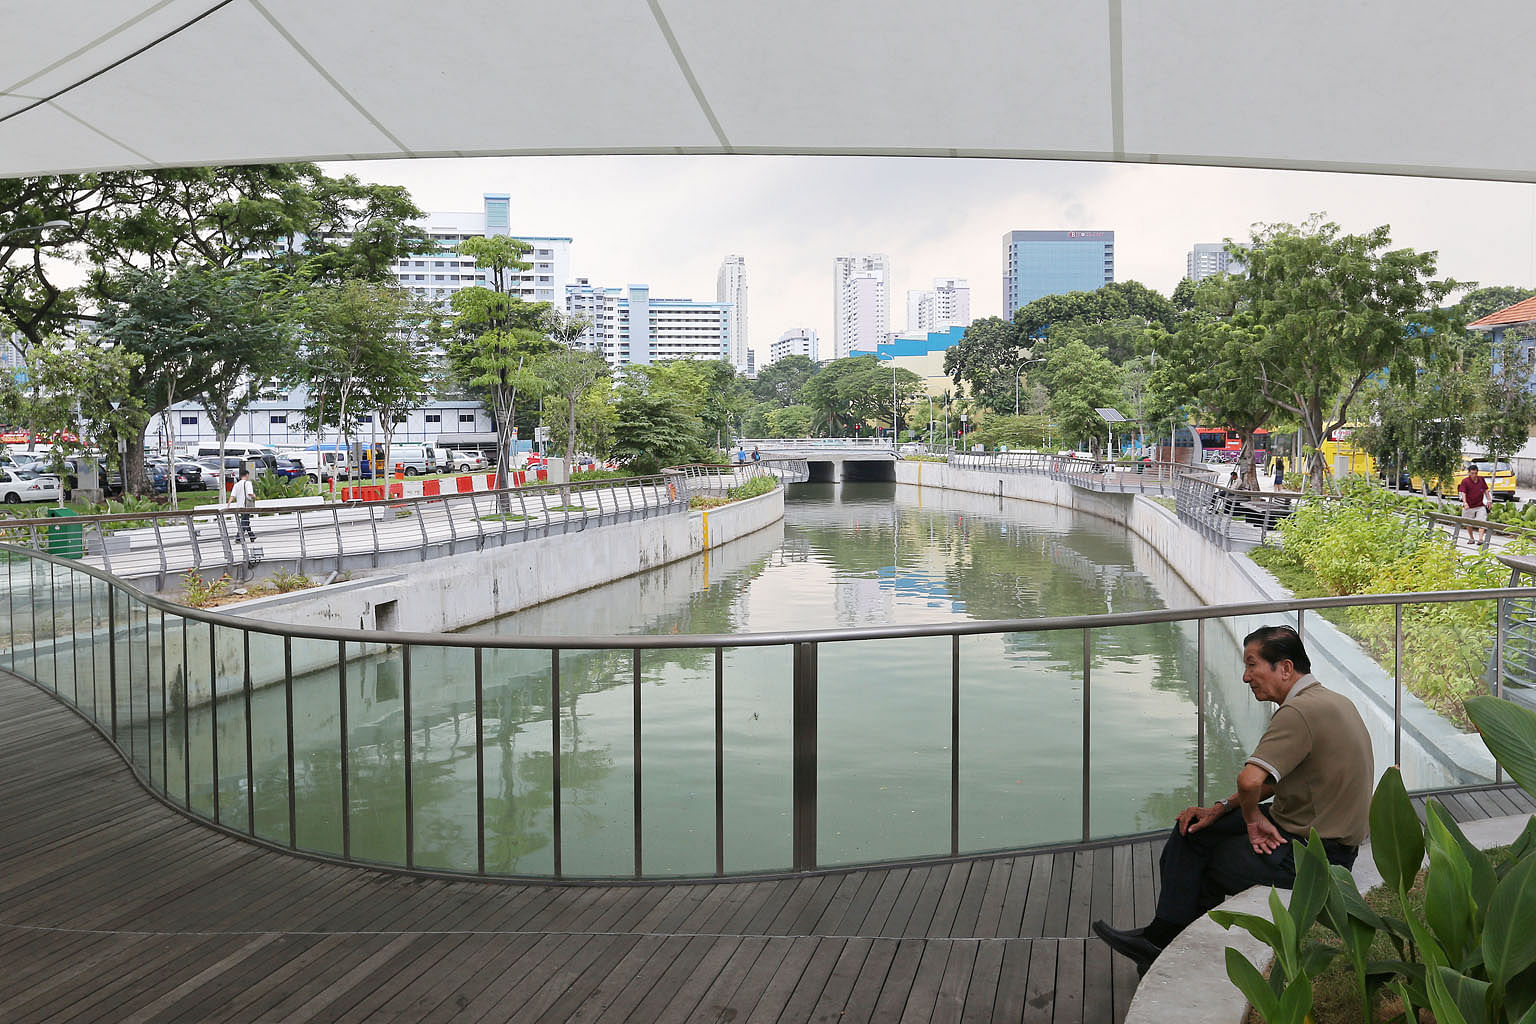 HDB flats near Rochor Canal, which is within walking distance of Rochor station on Downtown Line 2 (DTL 2). A study shows how, as the MRT line opened, the average housing resale prices surged by 2.8 per cent for homes located within 1.5km of a DTL2 s